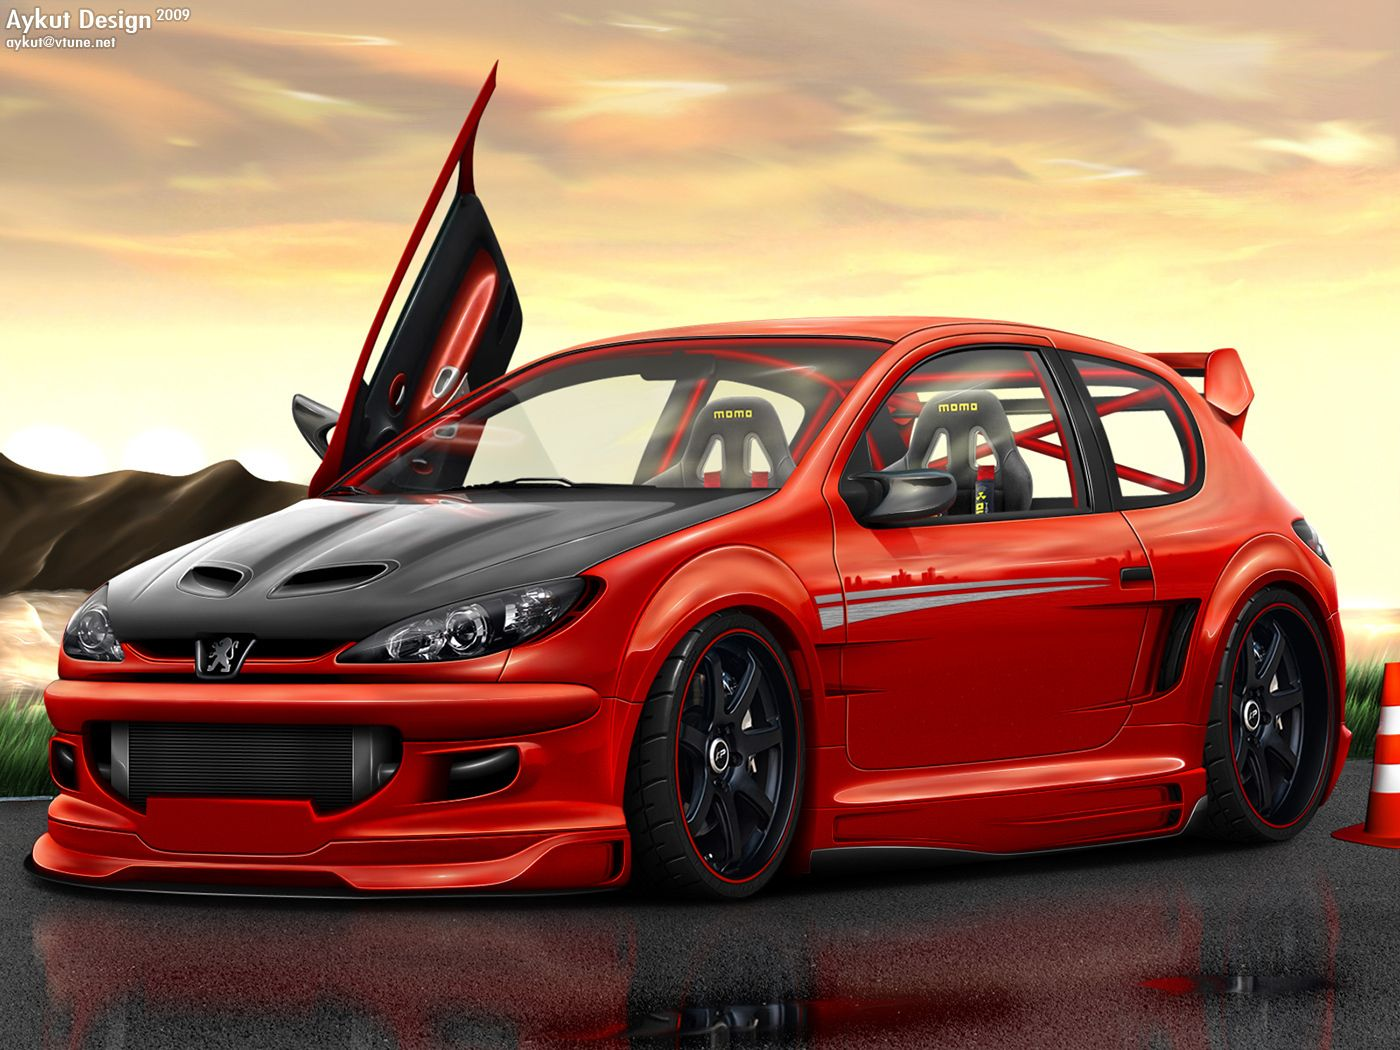 auto tuning peugeot 206 background wallpaper peugeot pinterest peugeot cars and bmw s1000rr. Black Bedroom Furniture Sets. Home Design Ideas